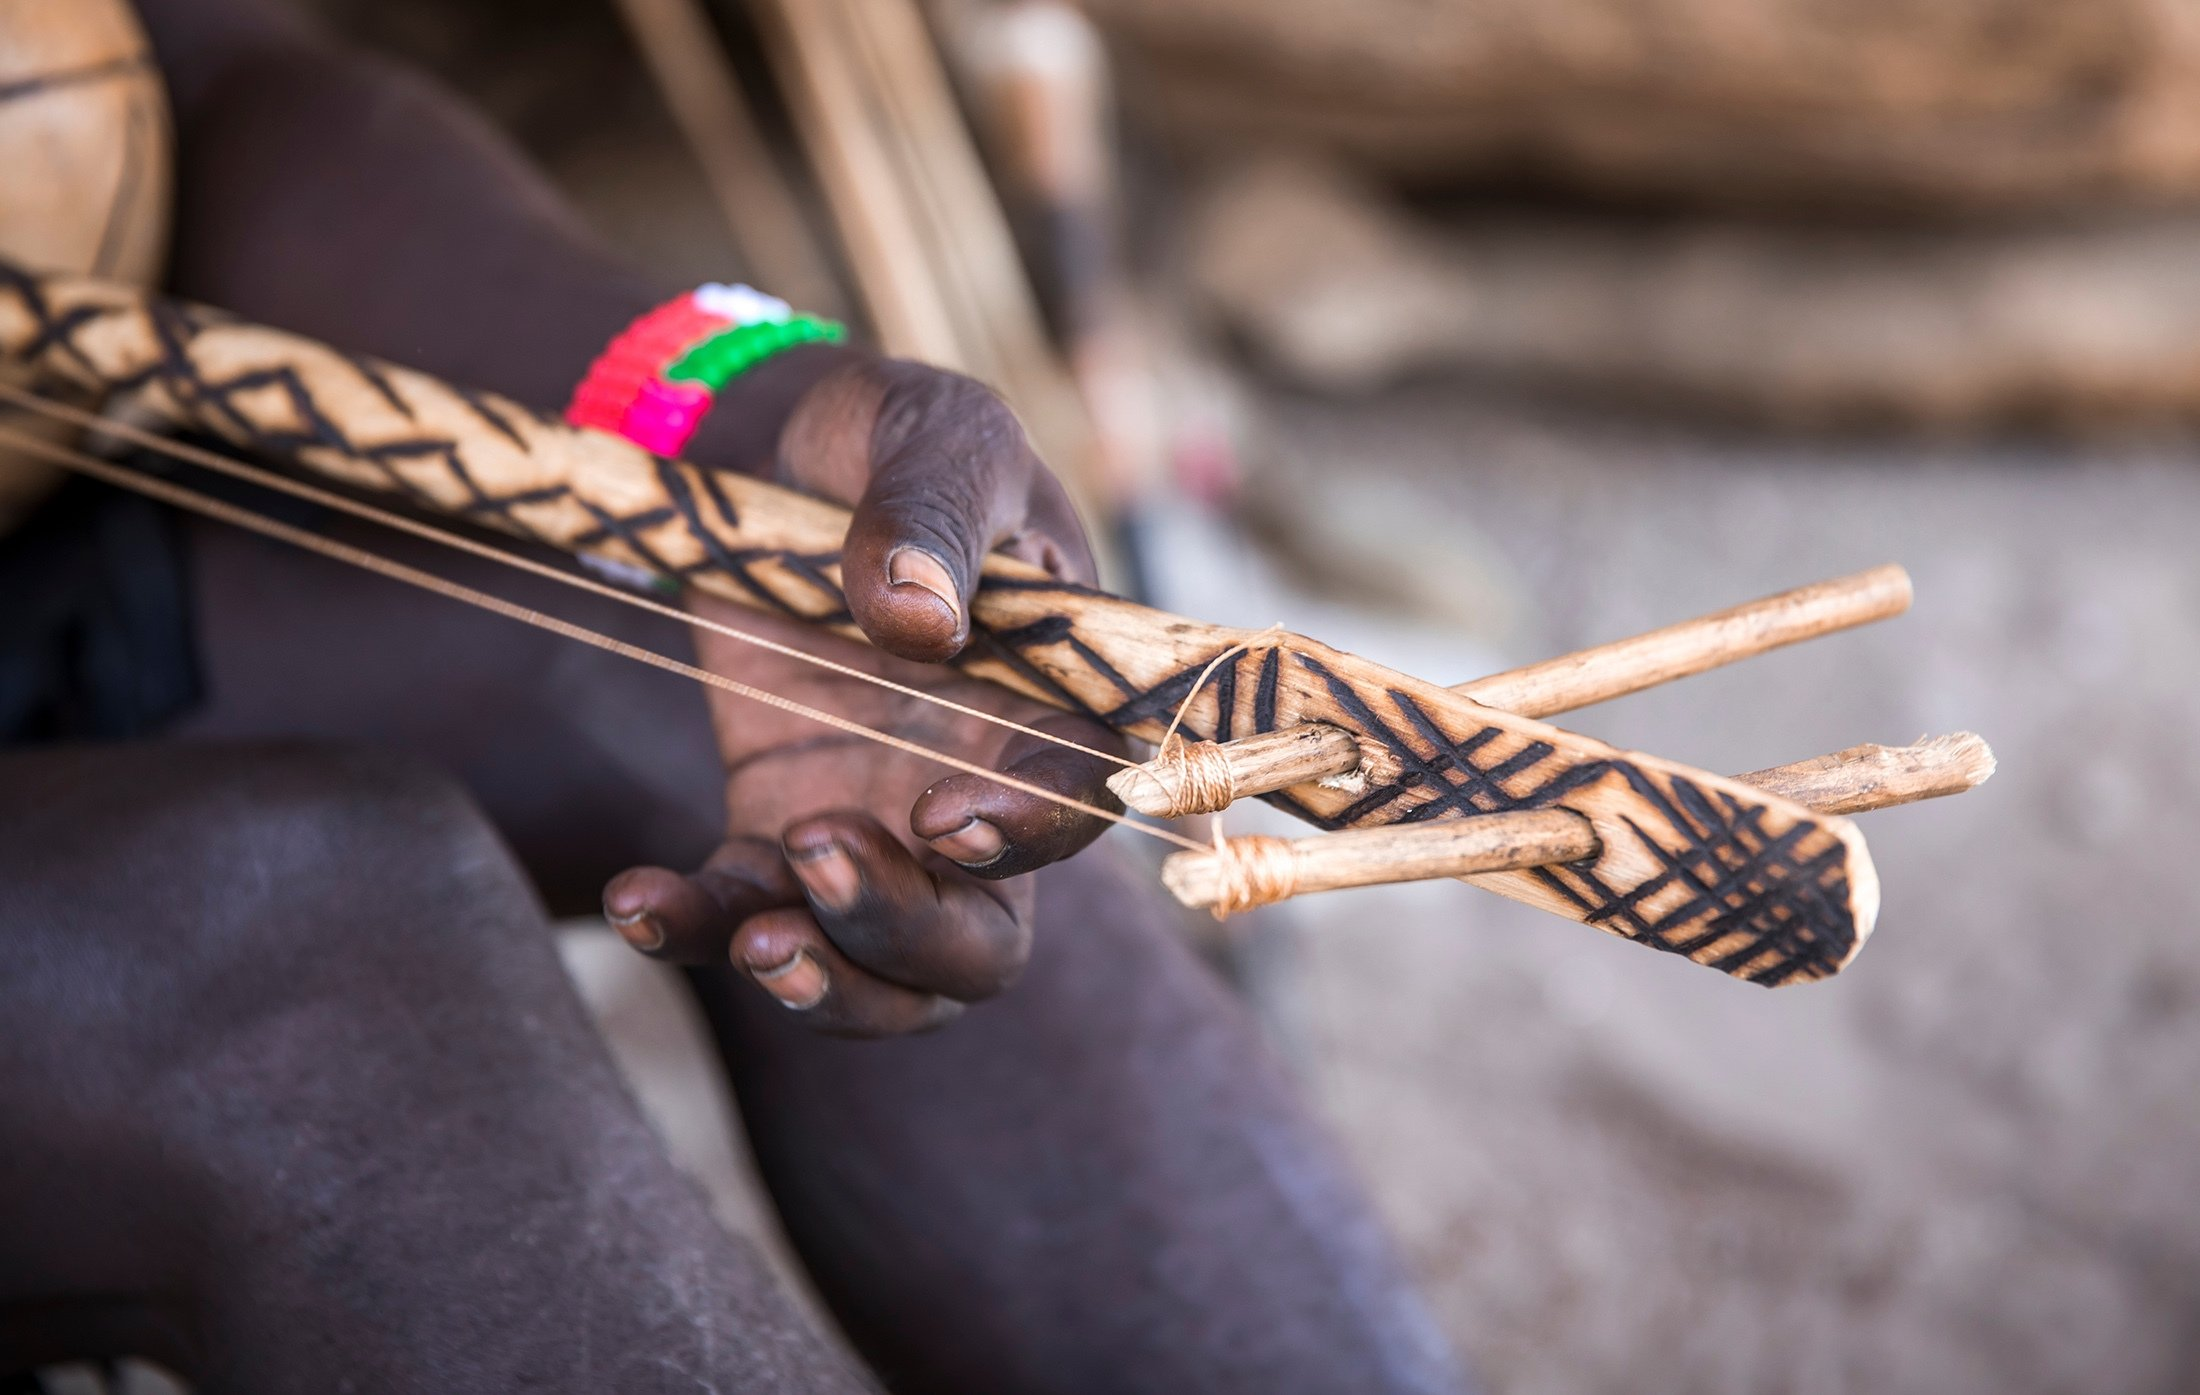 A Hadza man plays a homemade musical instrument in Tanzania. (Shutterstock Photo)